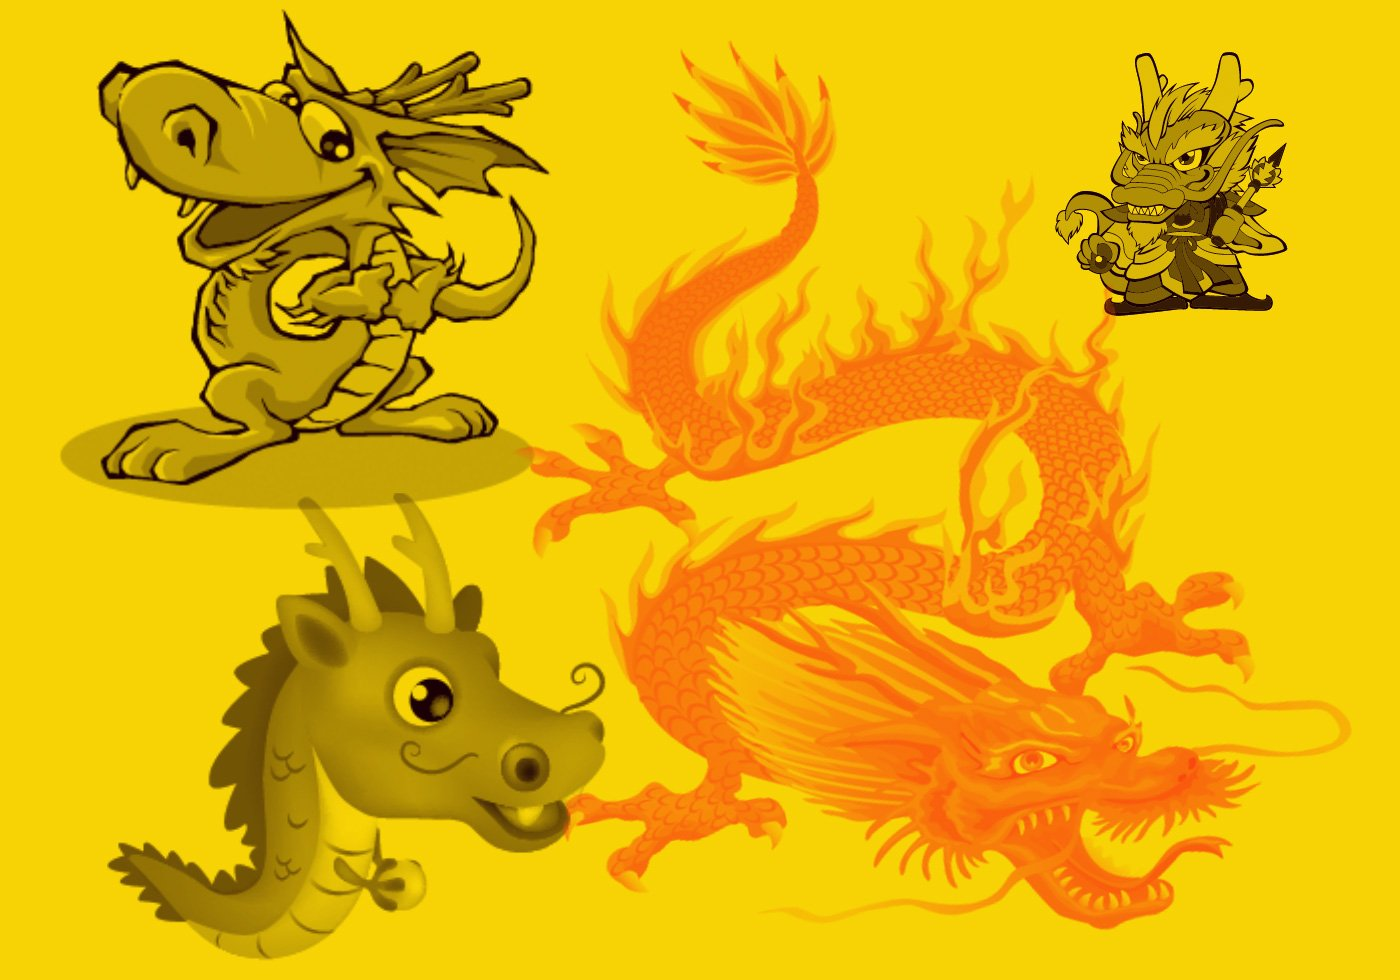 Chinese Dragon - Free Photoshop Brushes at Brusheezy!